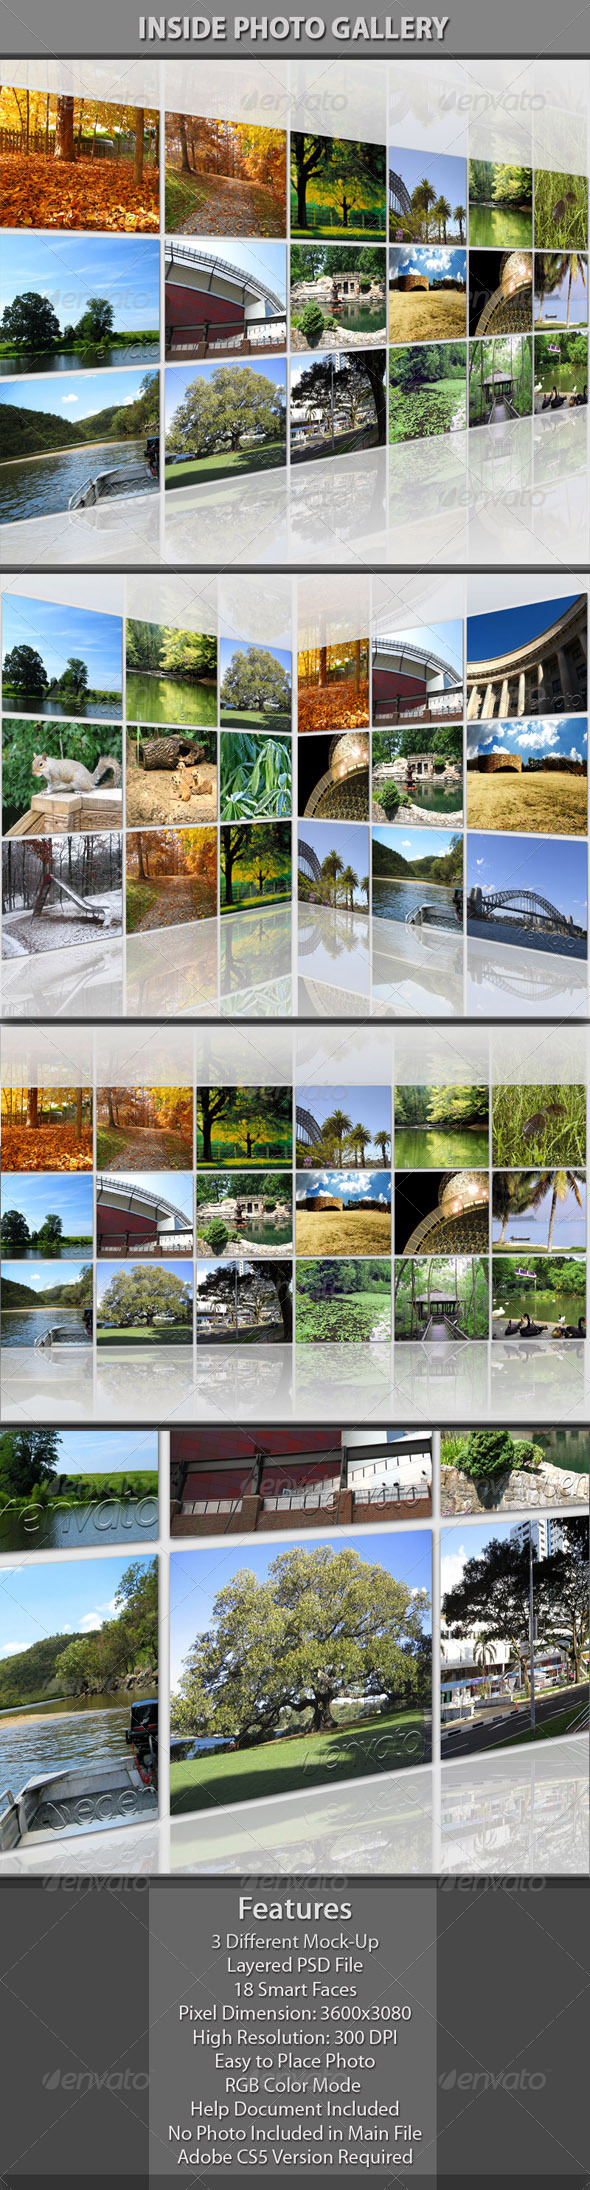 GraphicRiver Inside Photo Gallery 5571822